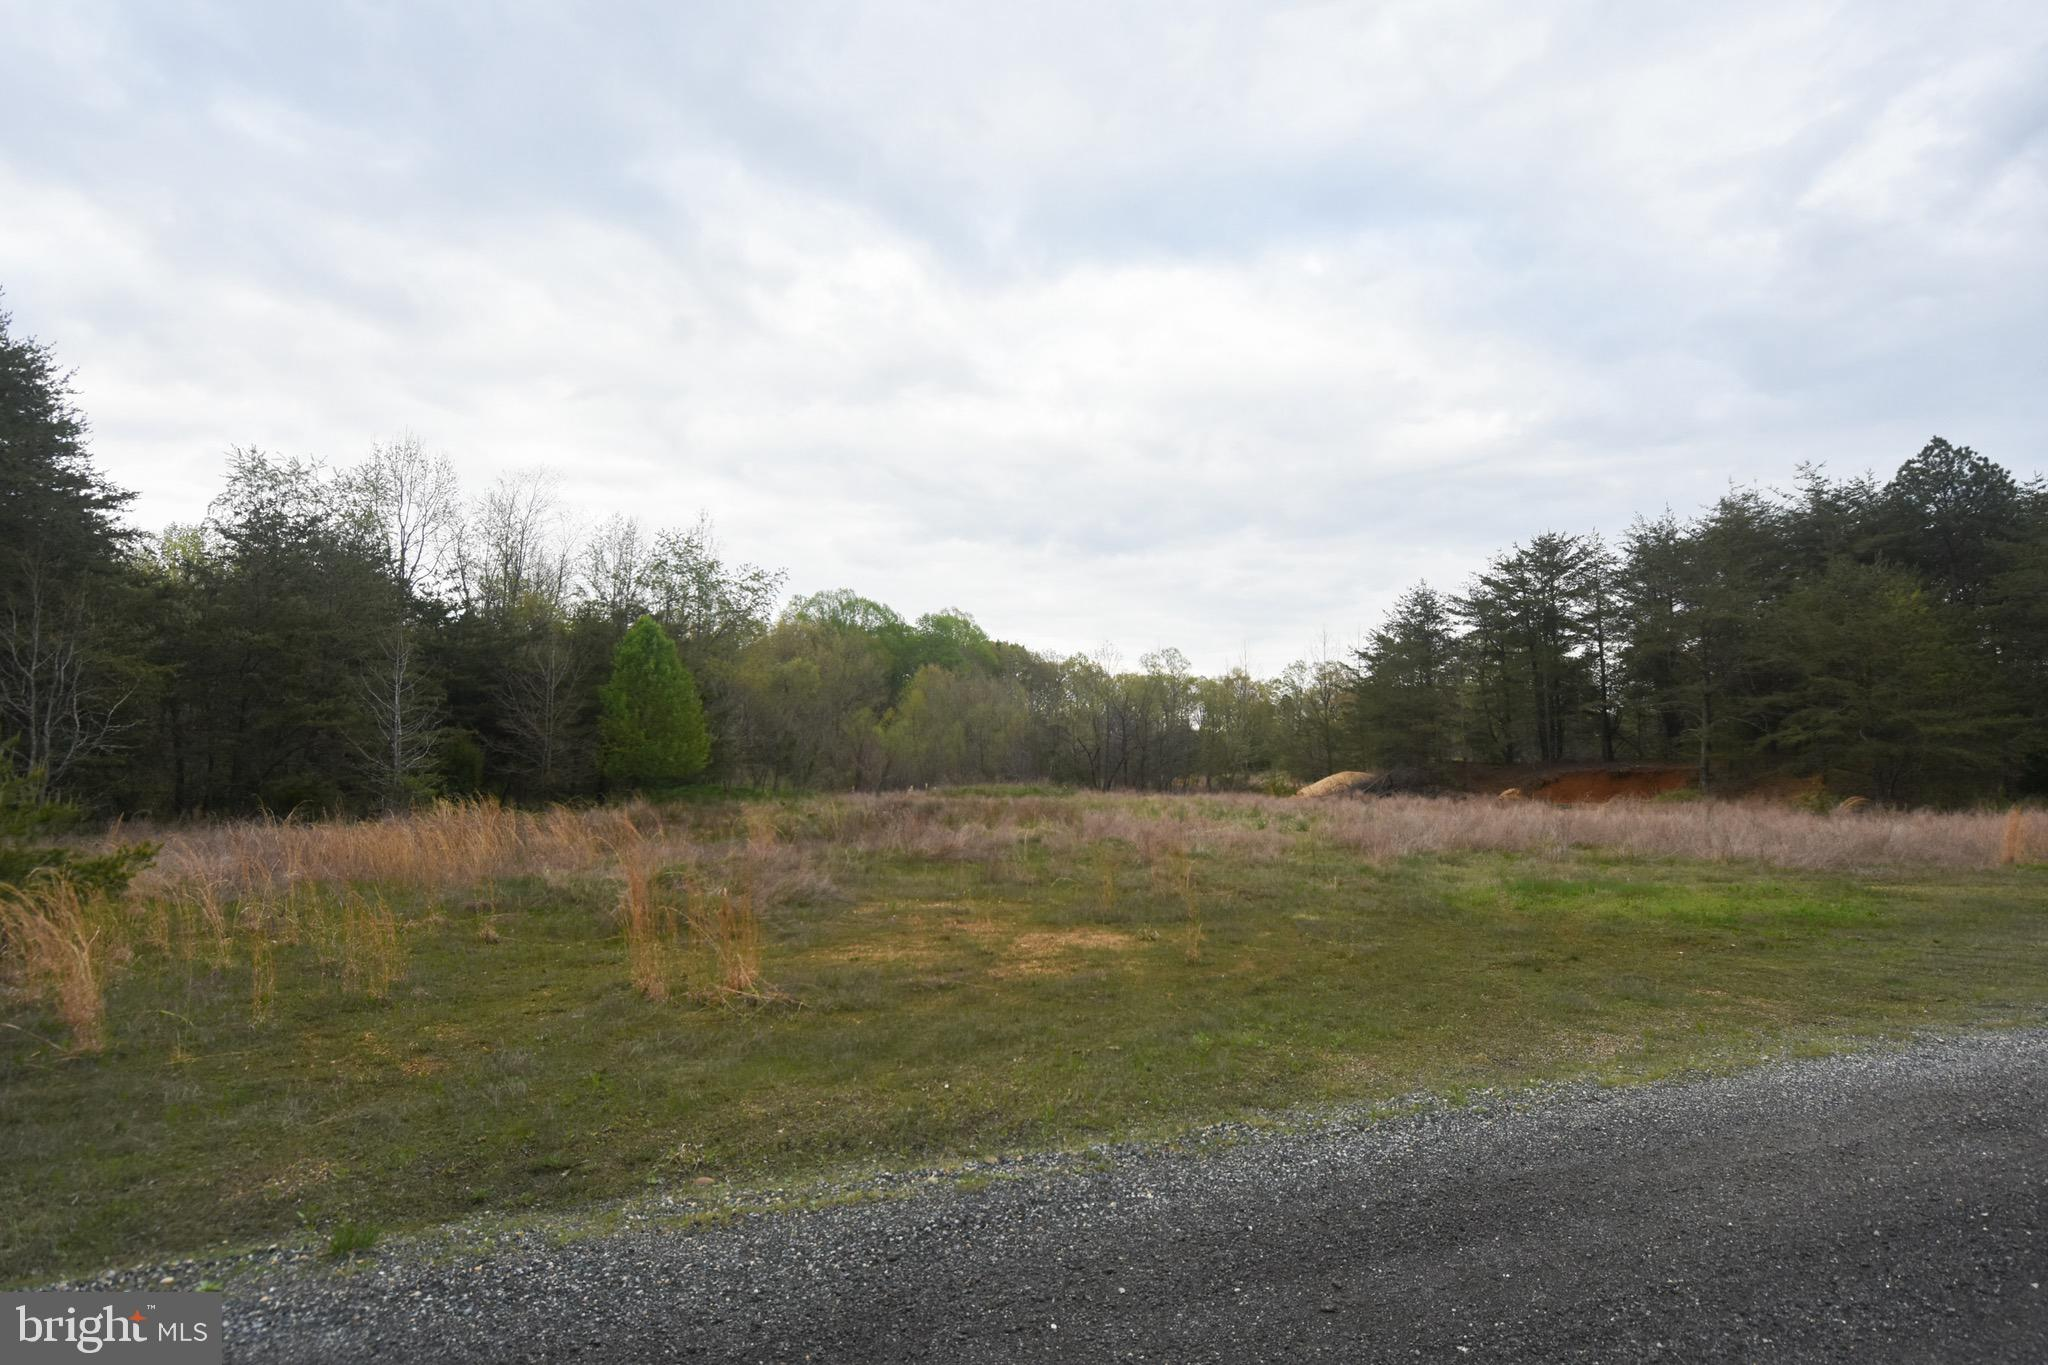 23+ acres in Waldorf!!!!! Wooded lot.  No HOA restrictions.  Approved Perc Test results in the process of  being recorded.  Property sits adjacent to brick home at the dead end. Right of  Way access to property off of LaPlata Road. No known address currently on file.  Shown as Parcel #2 on plat.